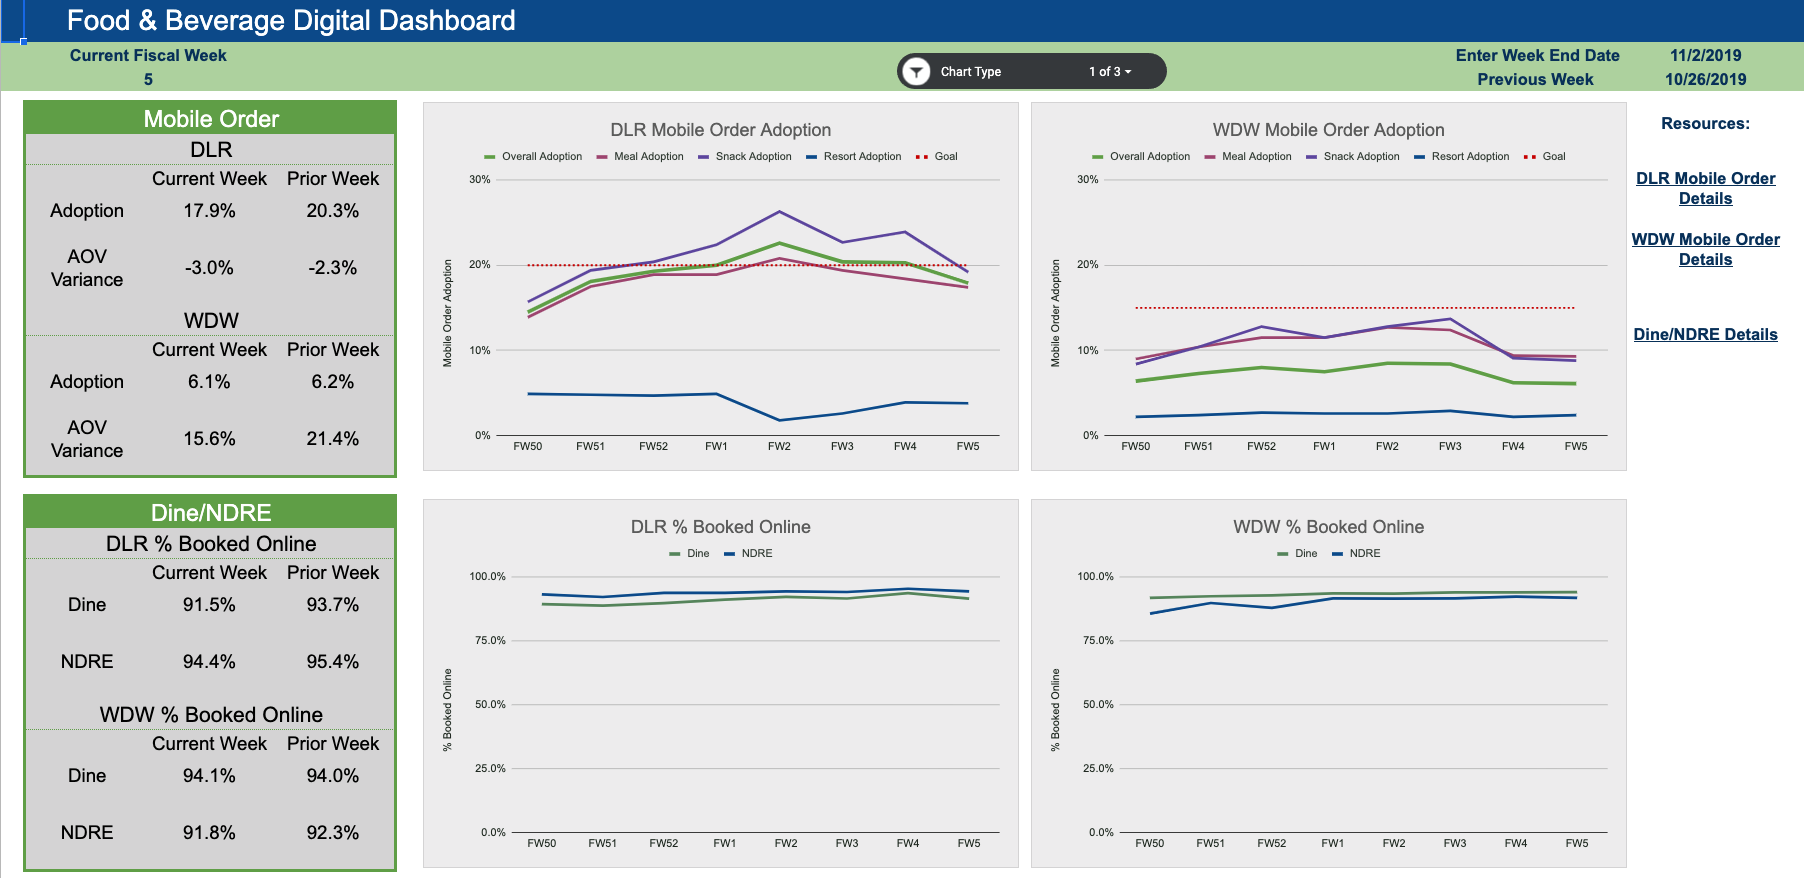 Screenshot of the F&B digital dashboard. There is a white background, a blue banner across the top, and a green banner underneath the blue banner. On the left side there is a green & gray box displaying the Mobile Order adoption & AOV variance for DLR & WDW for both the current week & prior week. There is a green & gray box displaying the Dine & Non-dine reservation % booked online for both DLR & WDW for the current & prior weeks. There are four graphs displaying the same data in the boxes over the past 8 fiscal weeks. On the left there are links to other resources.